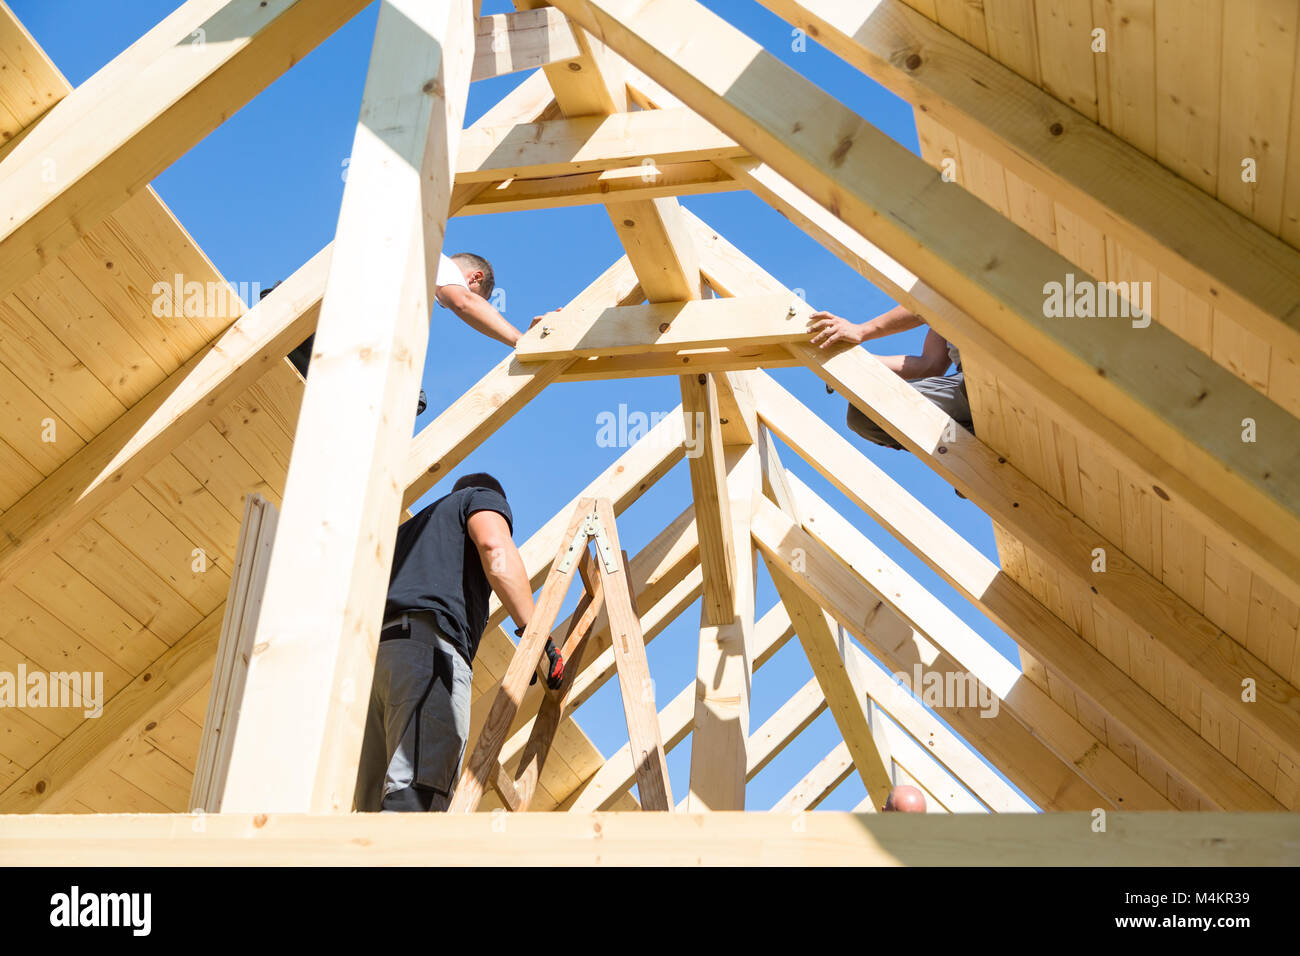 Builders At Work With Wooden Roof Construction Stock Photo